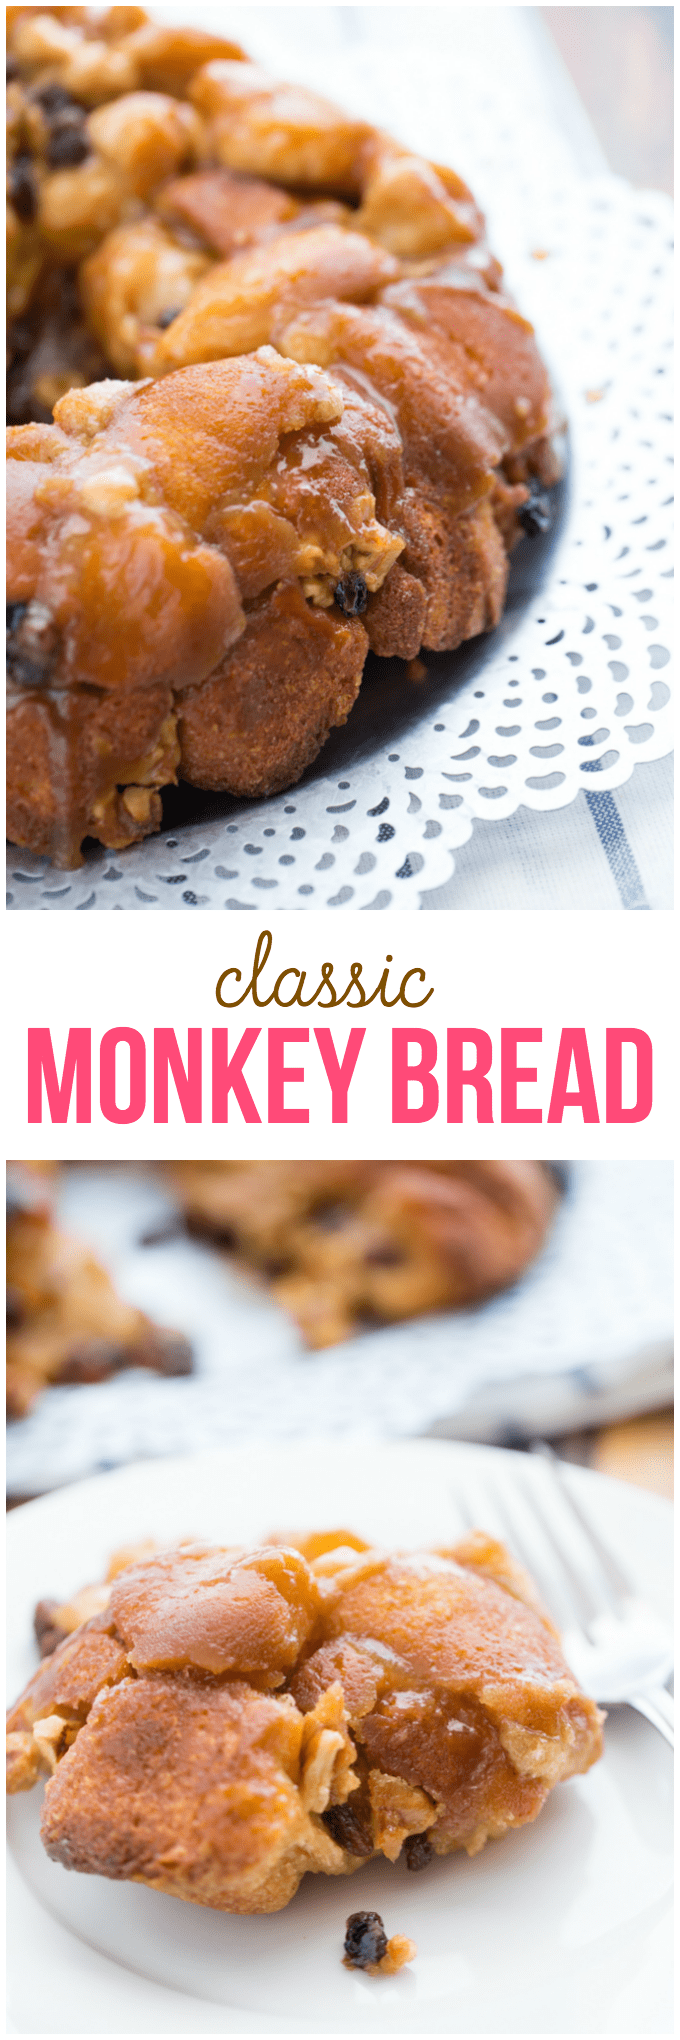 Classic Monkey Bread - Sticky, sweet and a melt-in-your-mouth kinda recipe! You'll love how EASY this dessert is to make for your family.